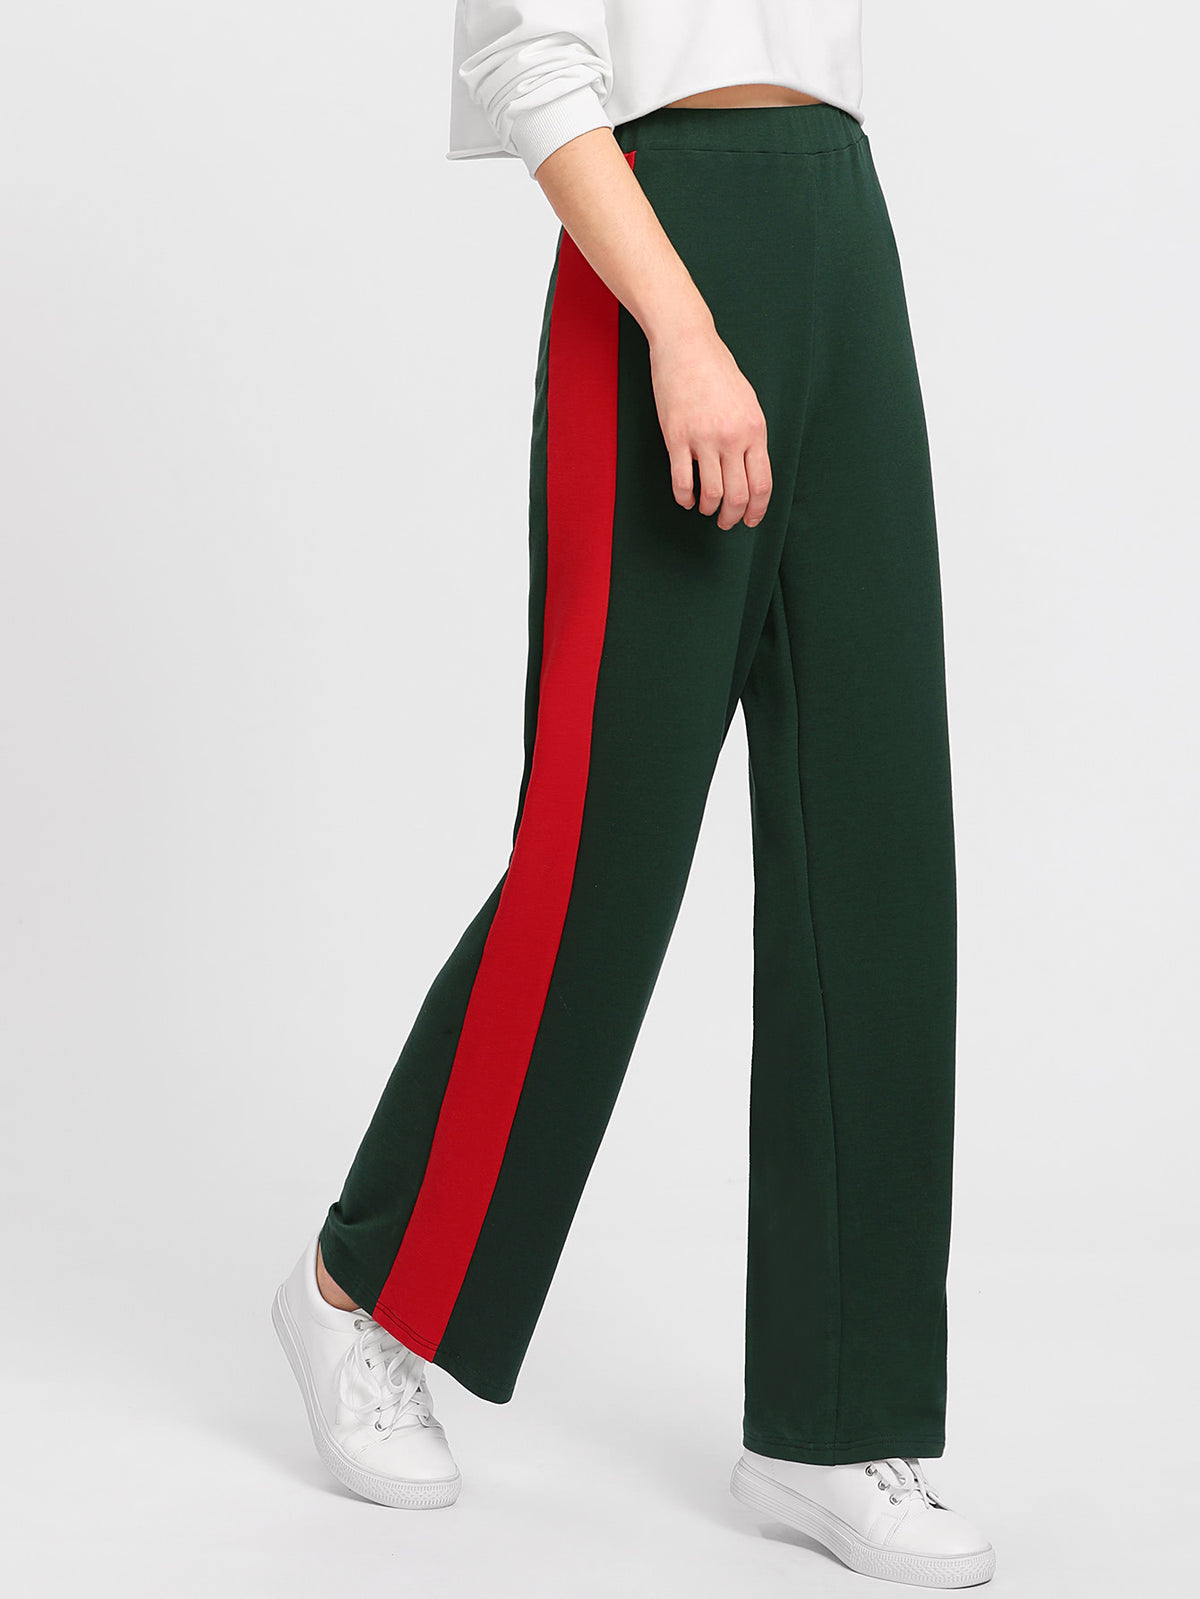 Cut And Sew Panel Side Pants